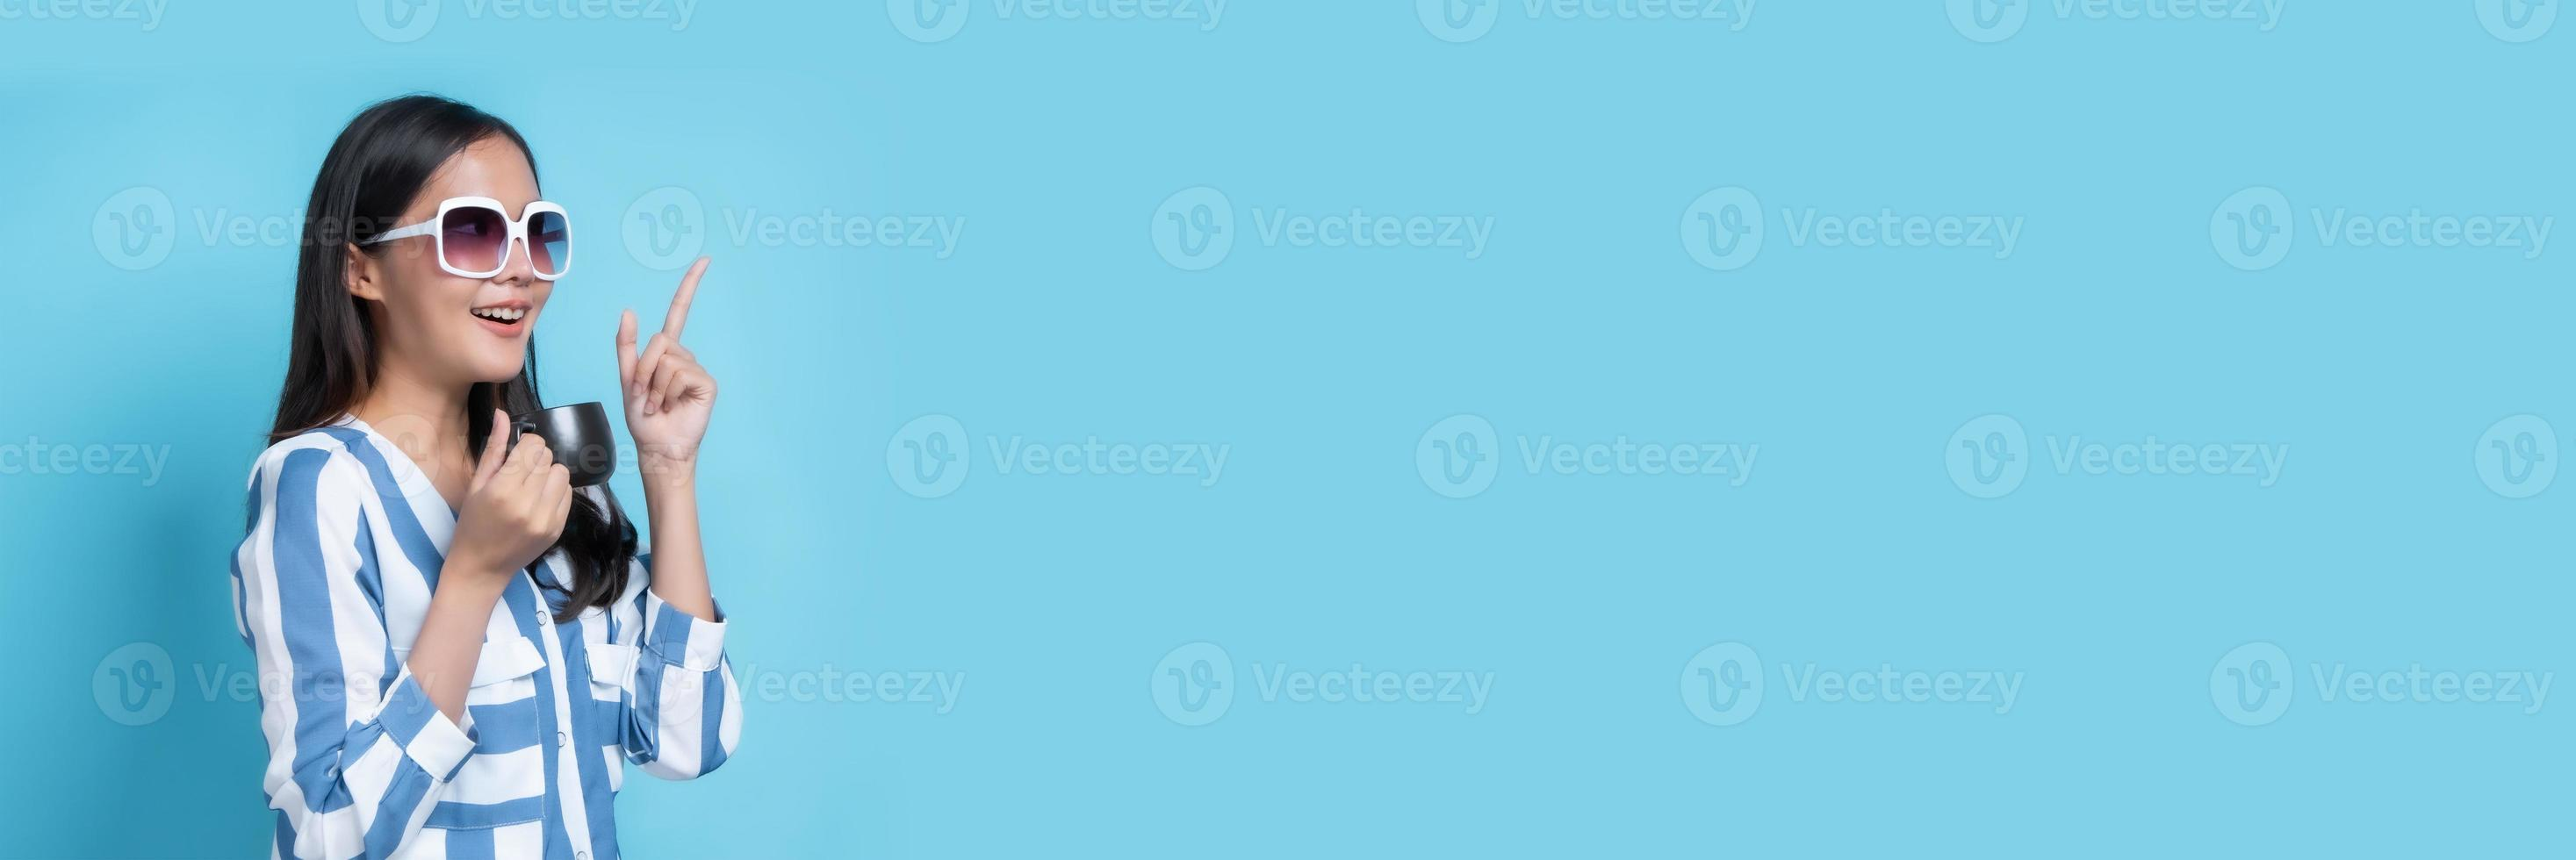 Asian woman with white sunglasses gesturing toward copy space on blue background photo